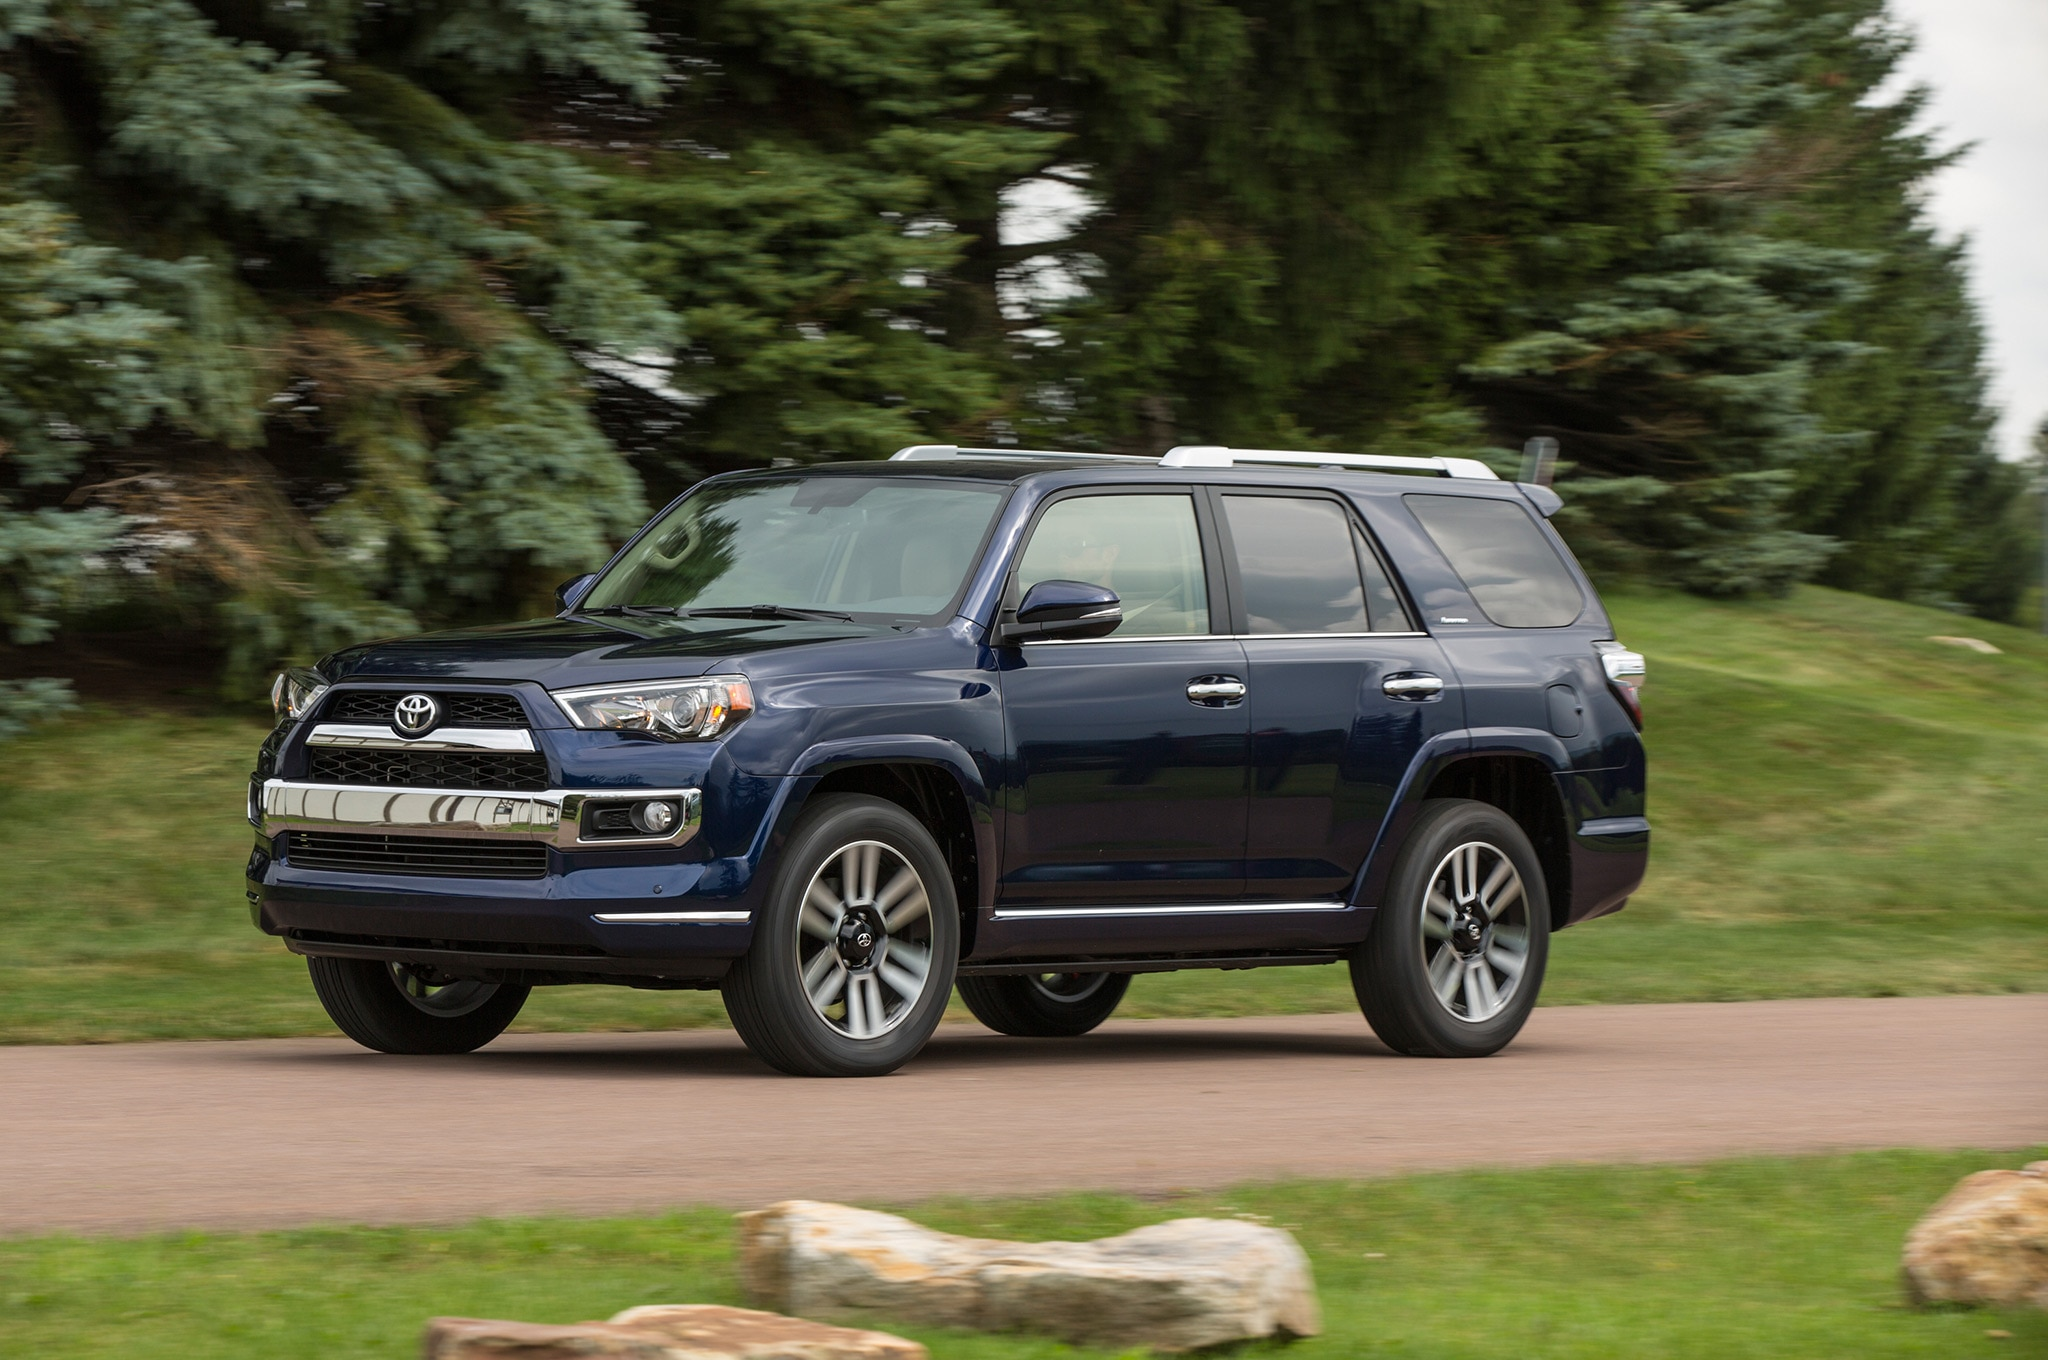 2005 toyota 4runner intellichoice review automobile. Black Bedroom Furniture Sets. Home Design Ideas